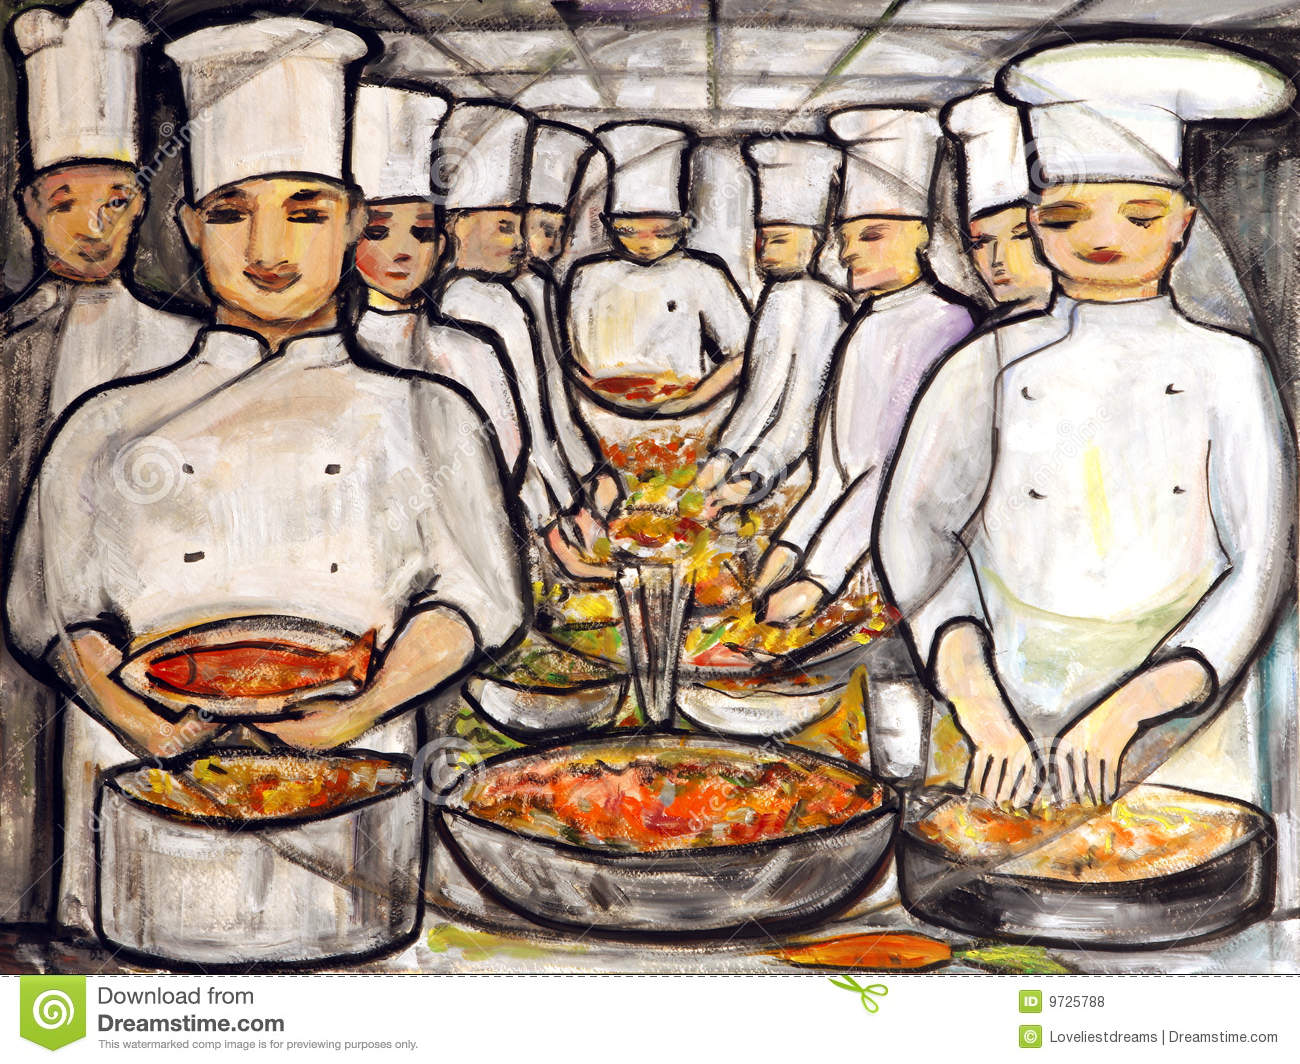 cooking-art-competition-9725788.jpg